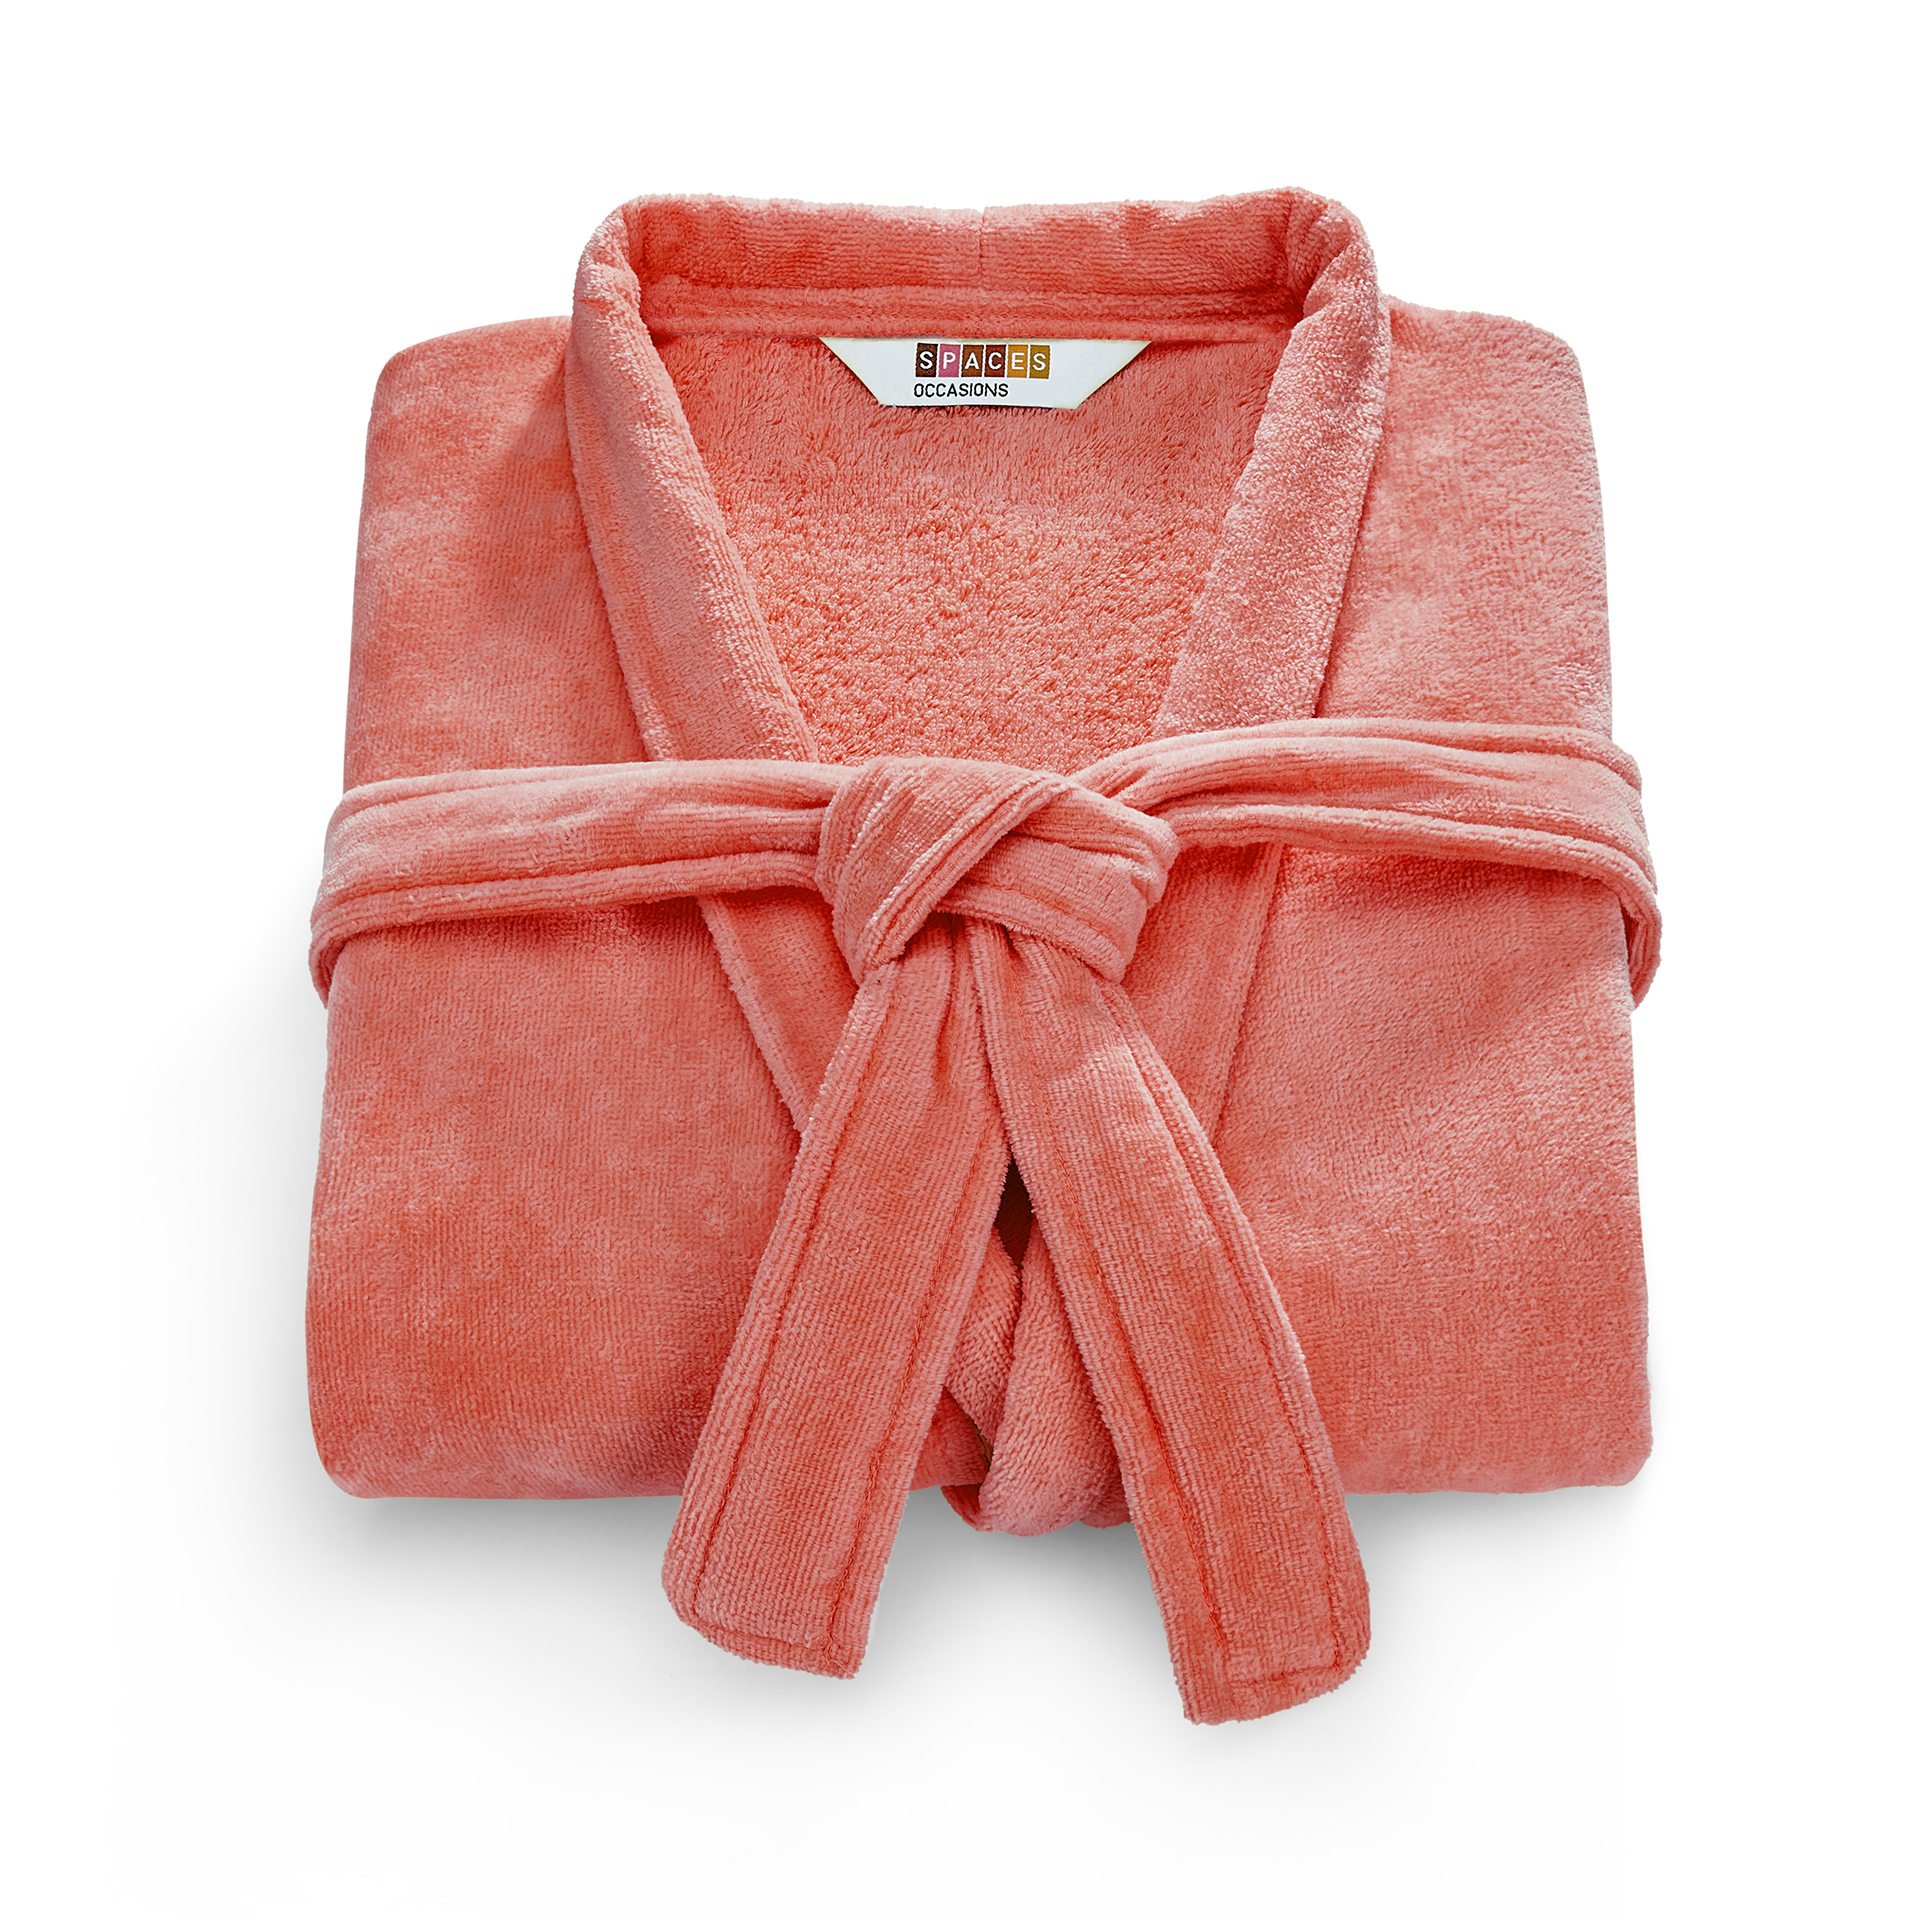 Spaces Allure Cotton Bath Robes in Coral-Navy Colour by Spaces